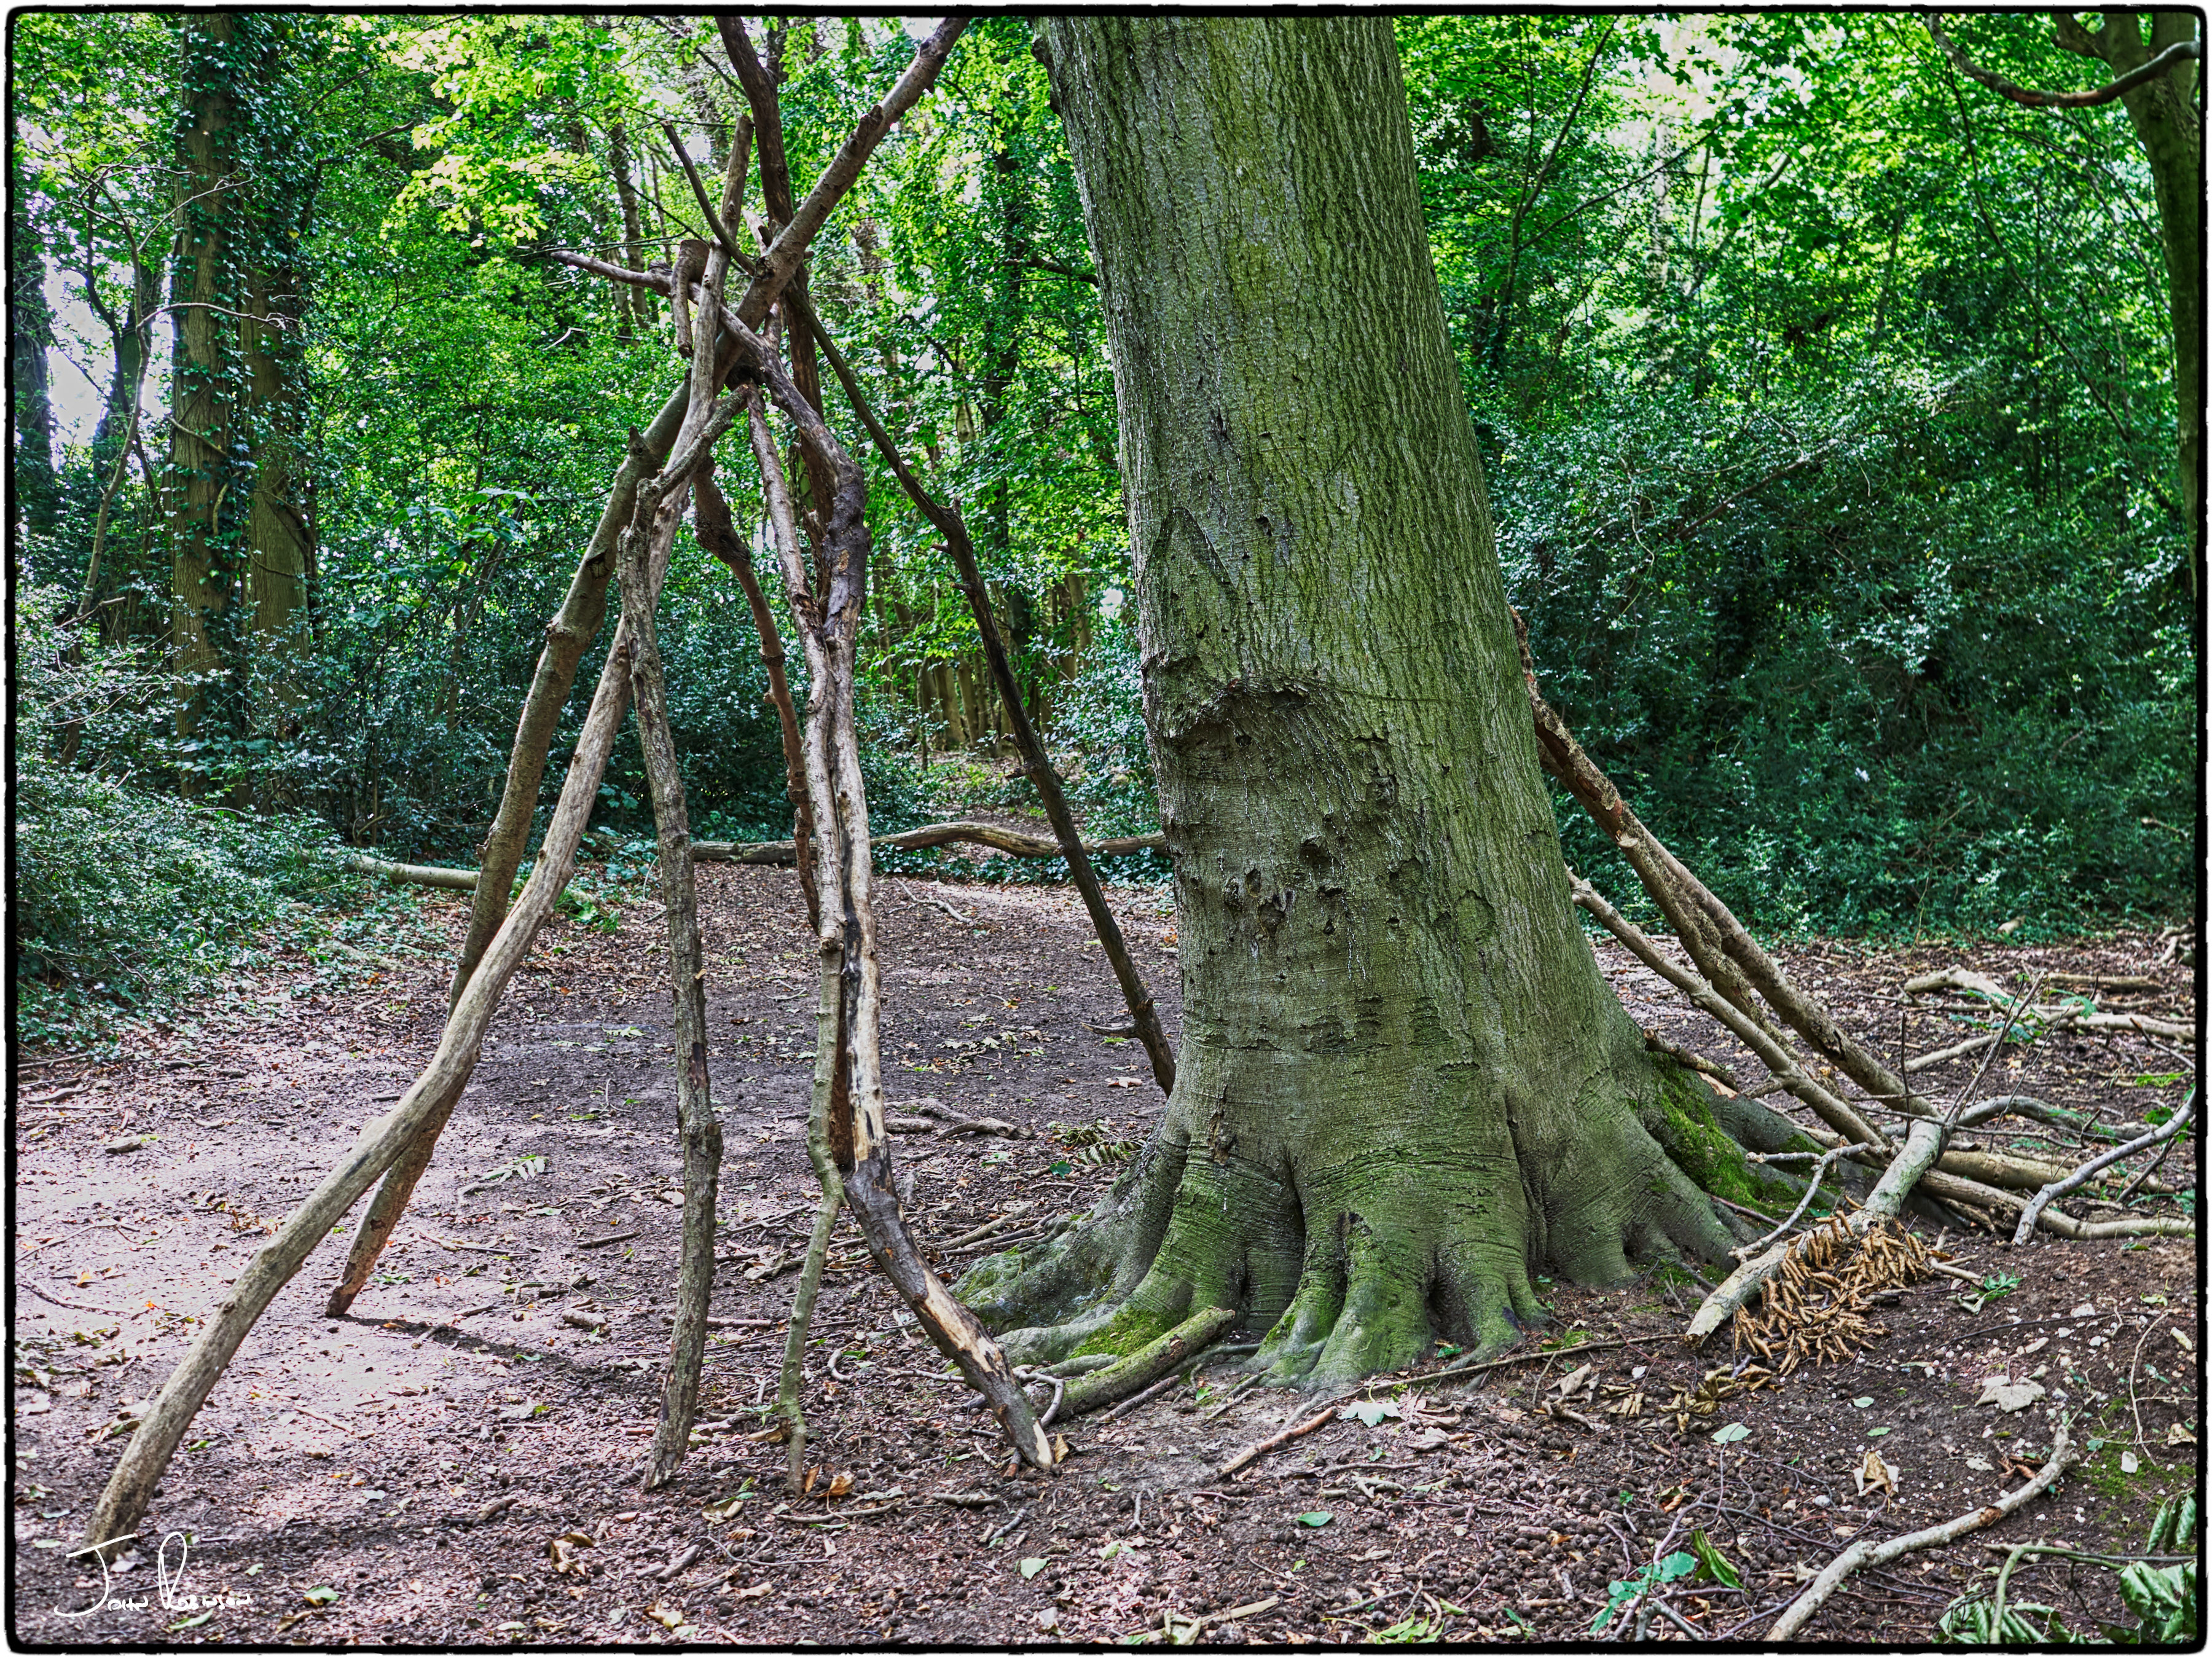 Rudimentary shelter in Freedown Wood, Kent